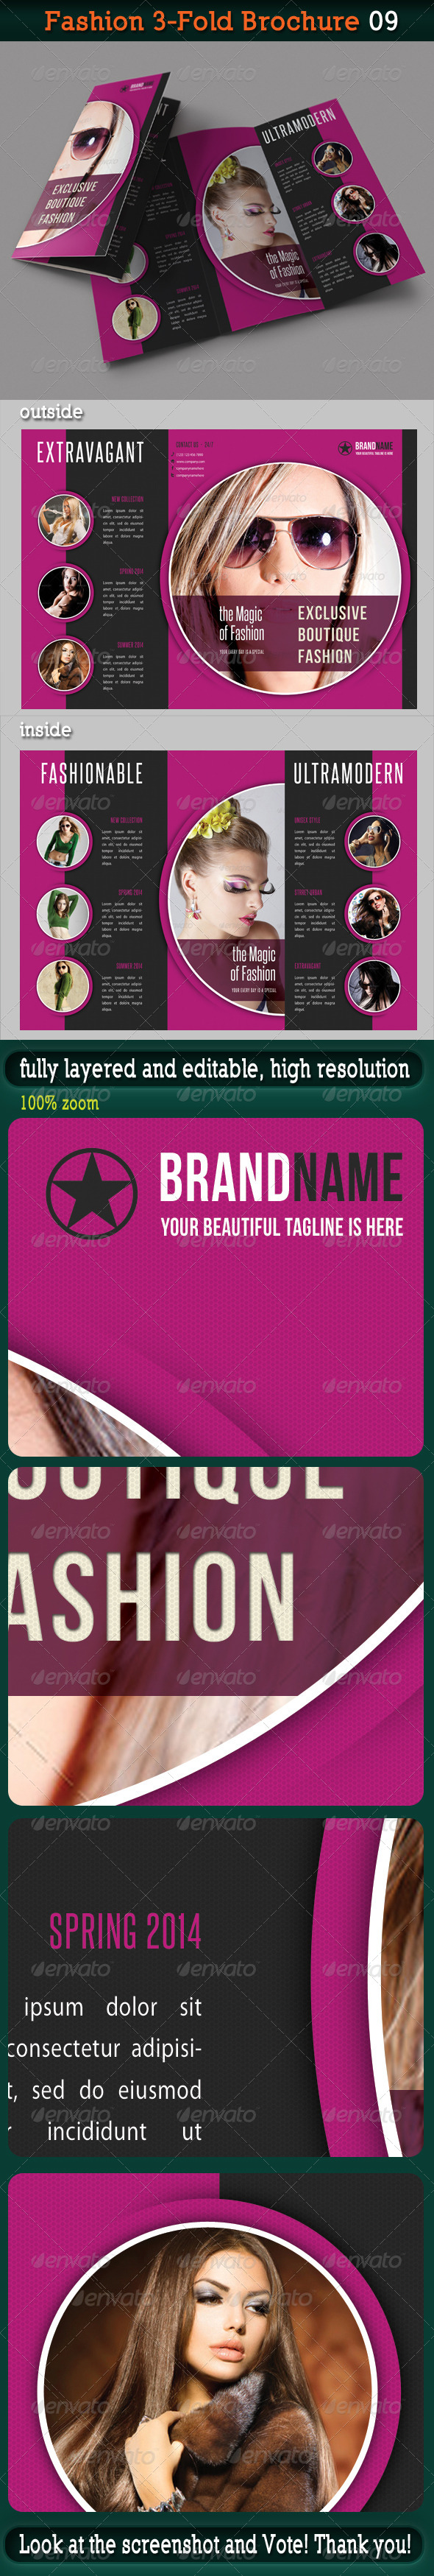 GraphicRiver Fashion 3-Fold Brochure 09 6304395